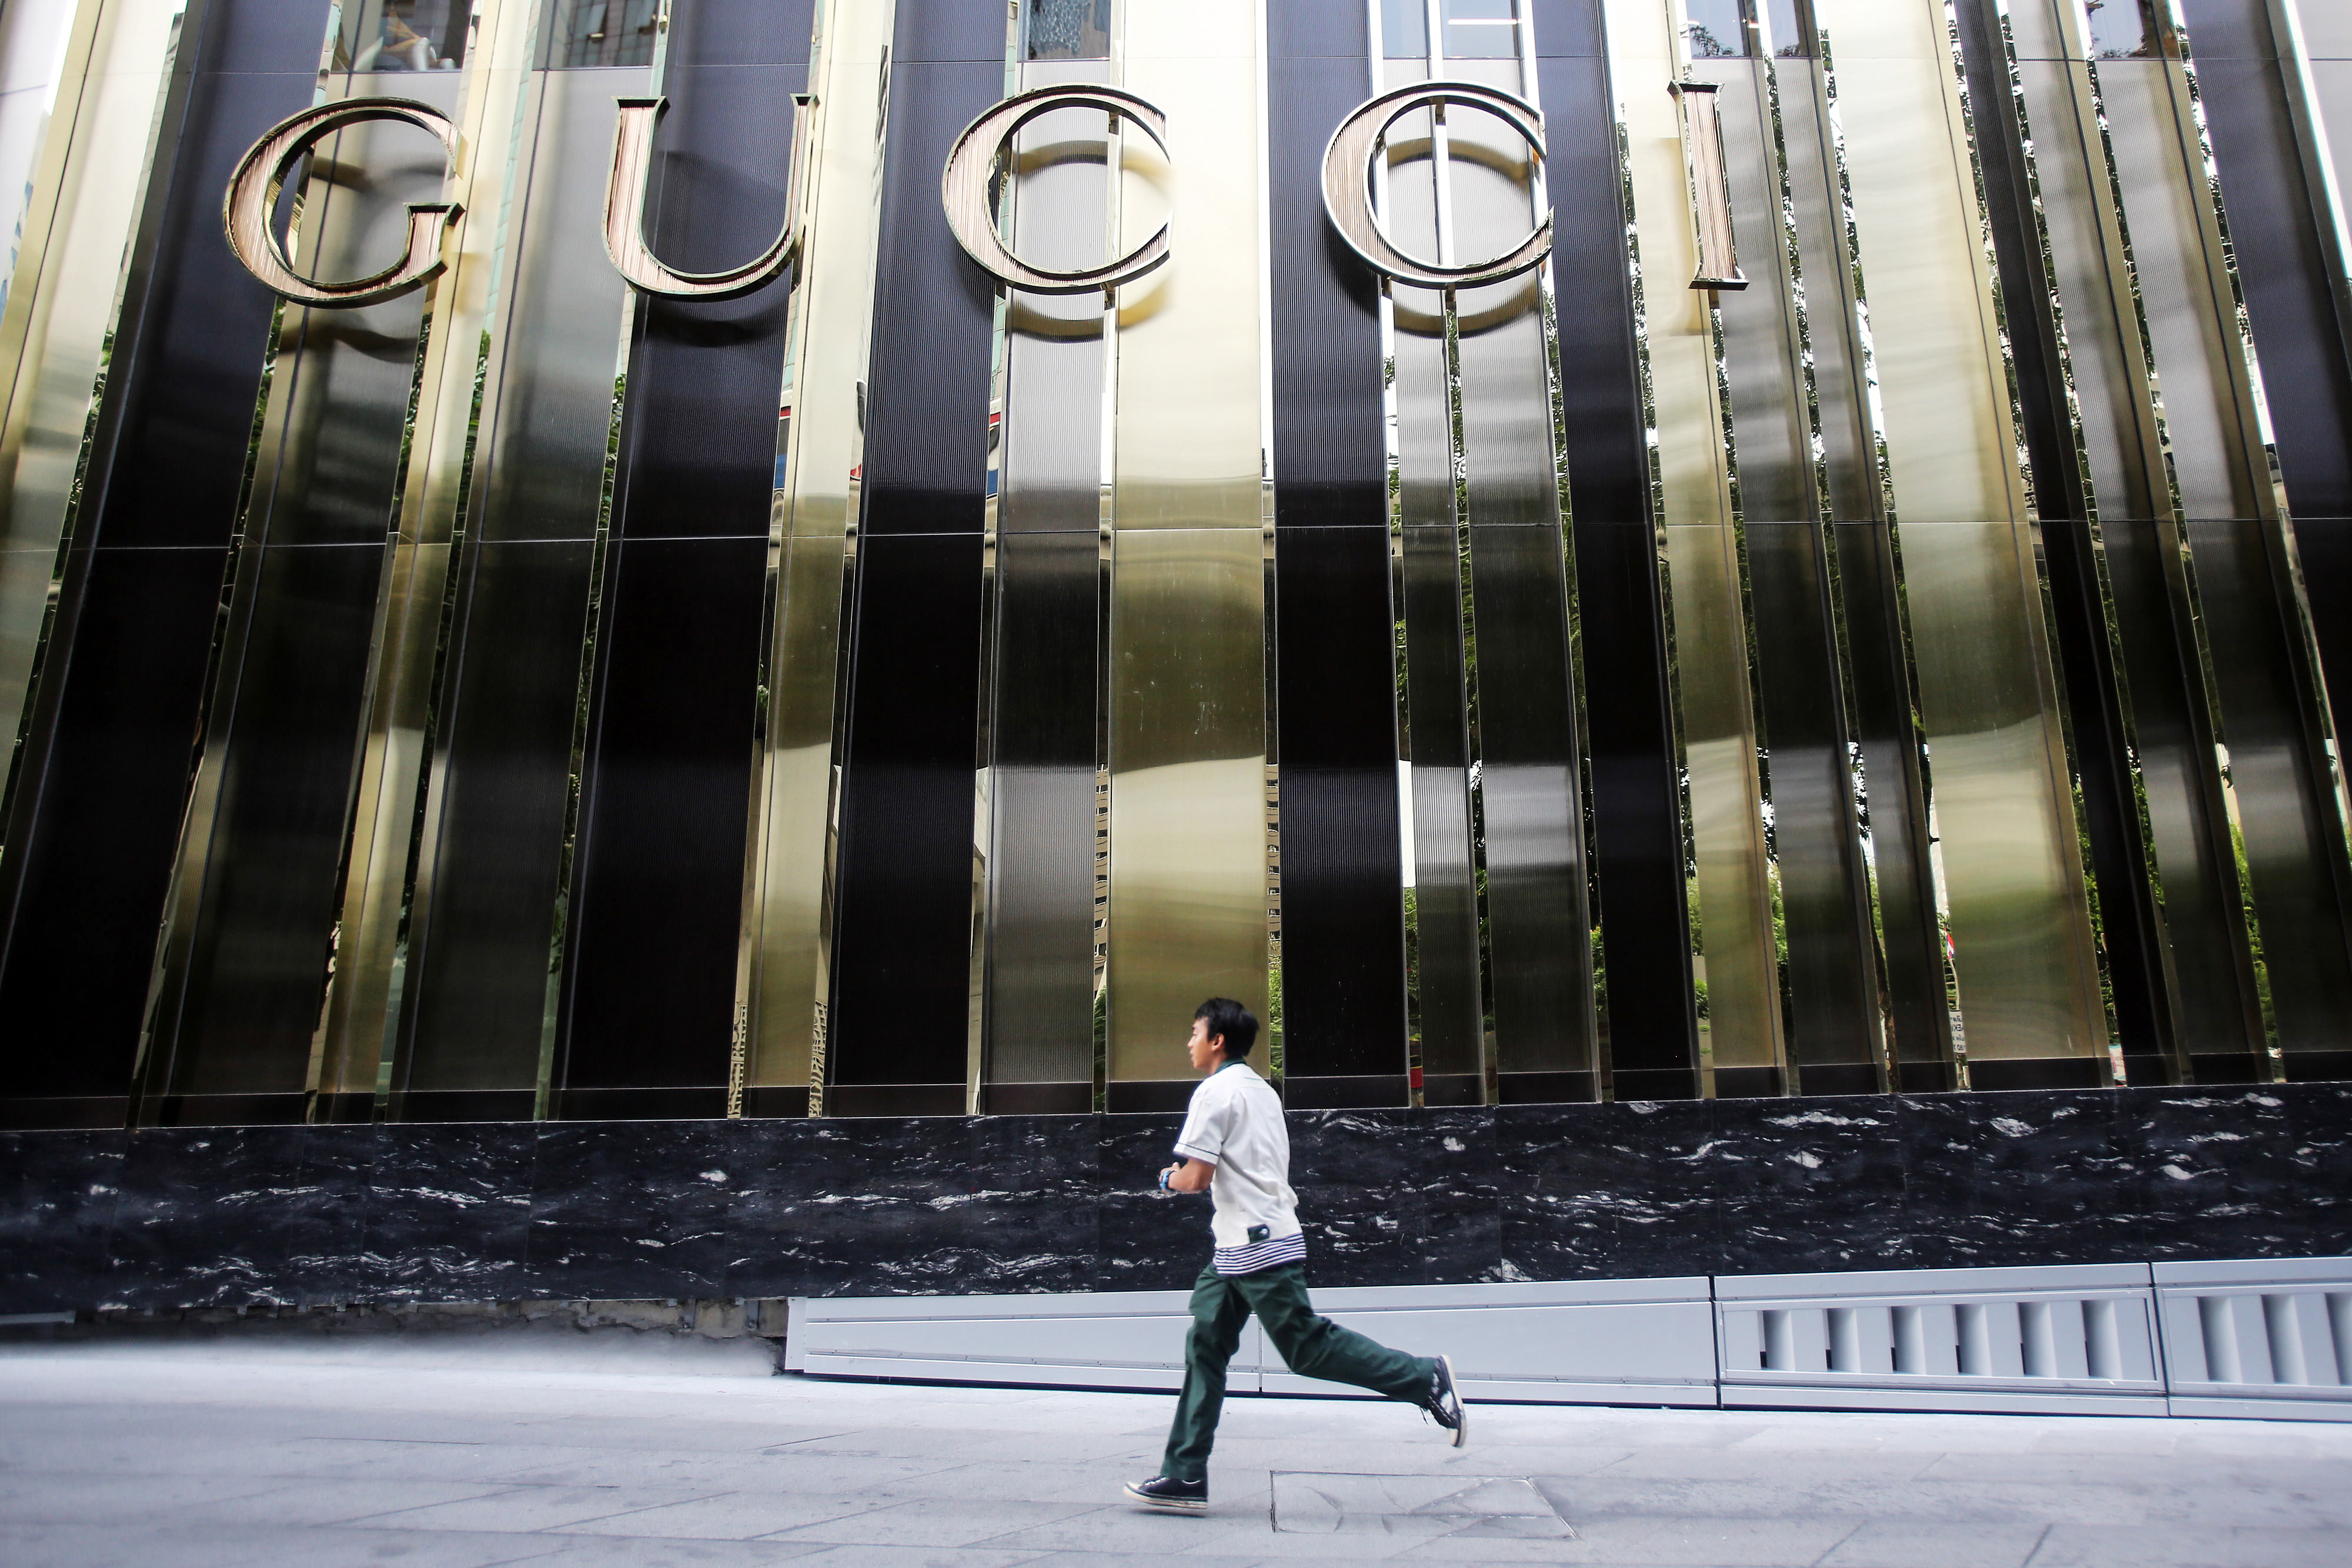 A man runs past the Gucci logo displayed outside the Central Embassy luxury mall in Bangkok on Aug. 15, 2014